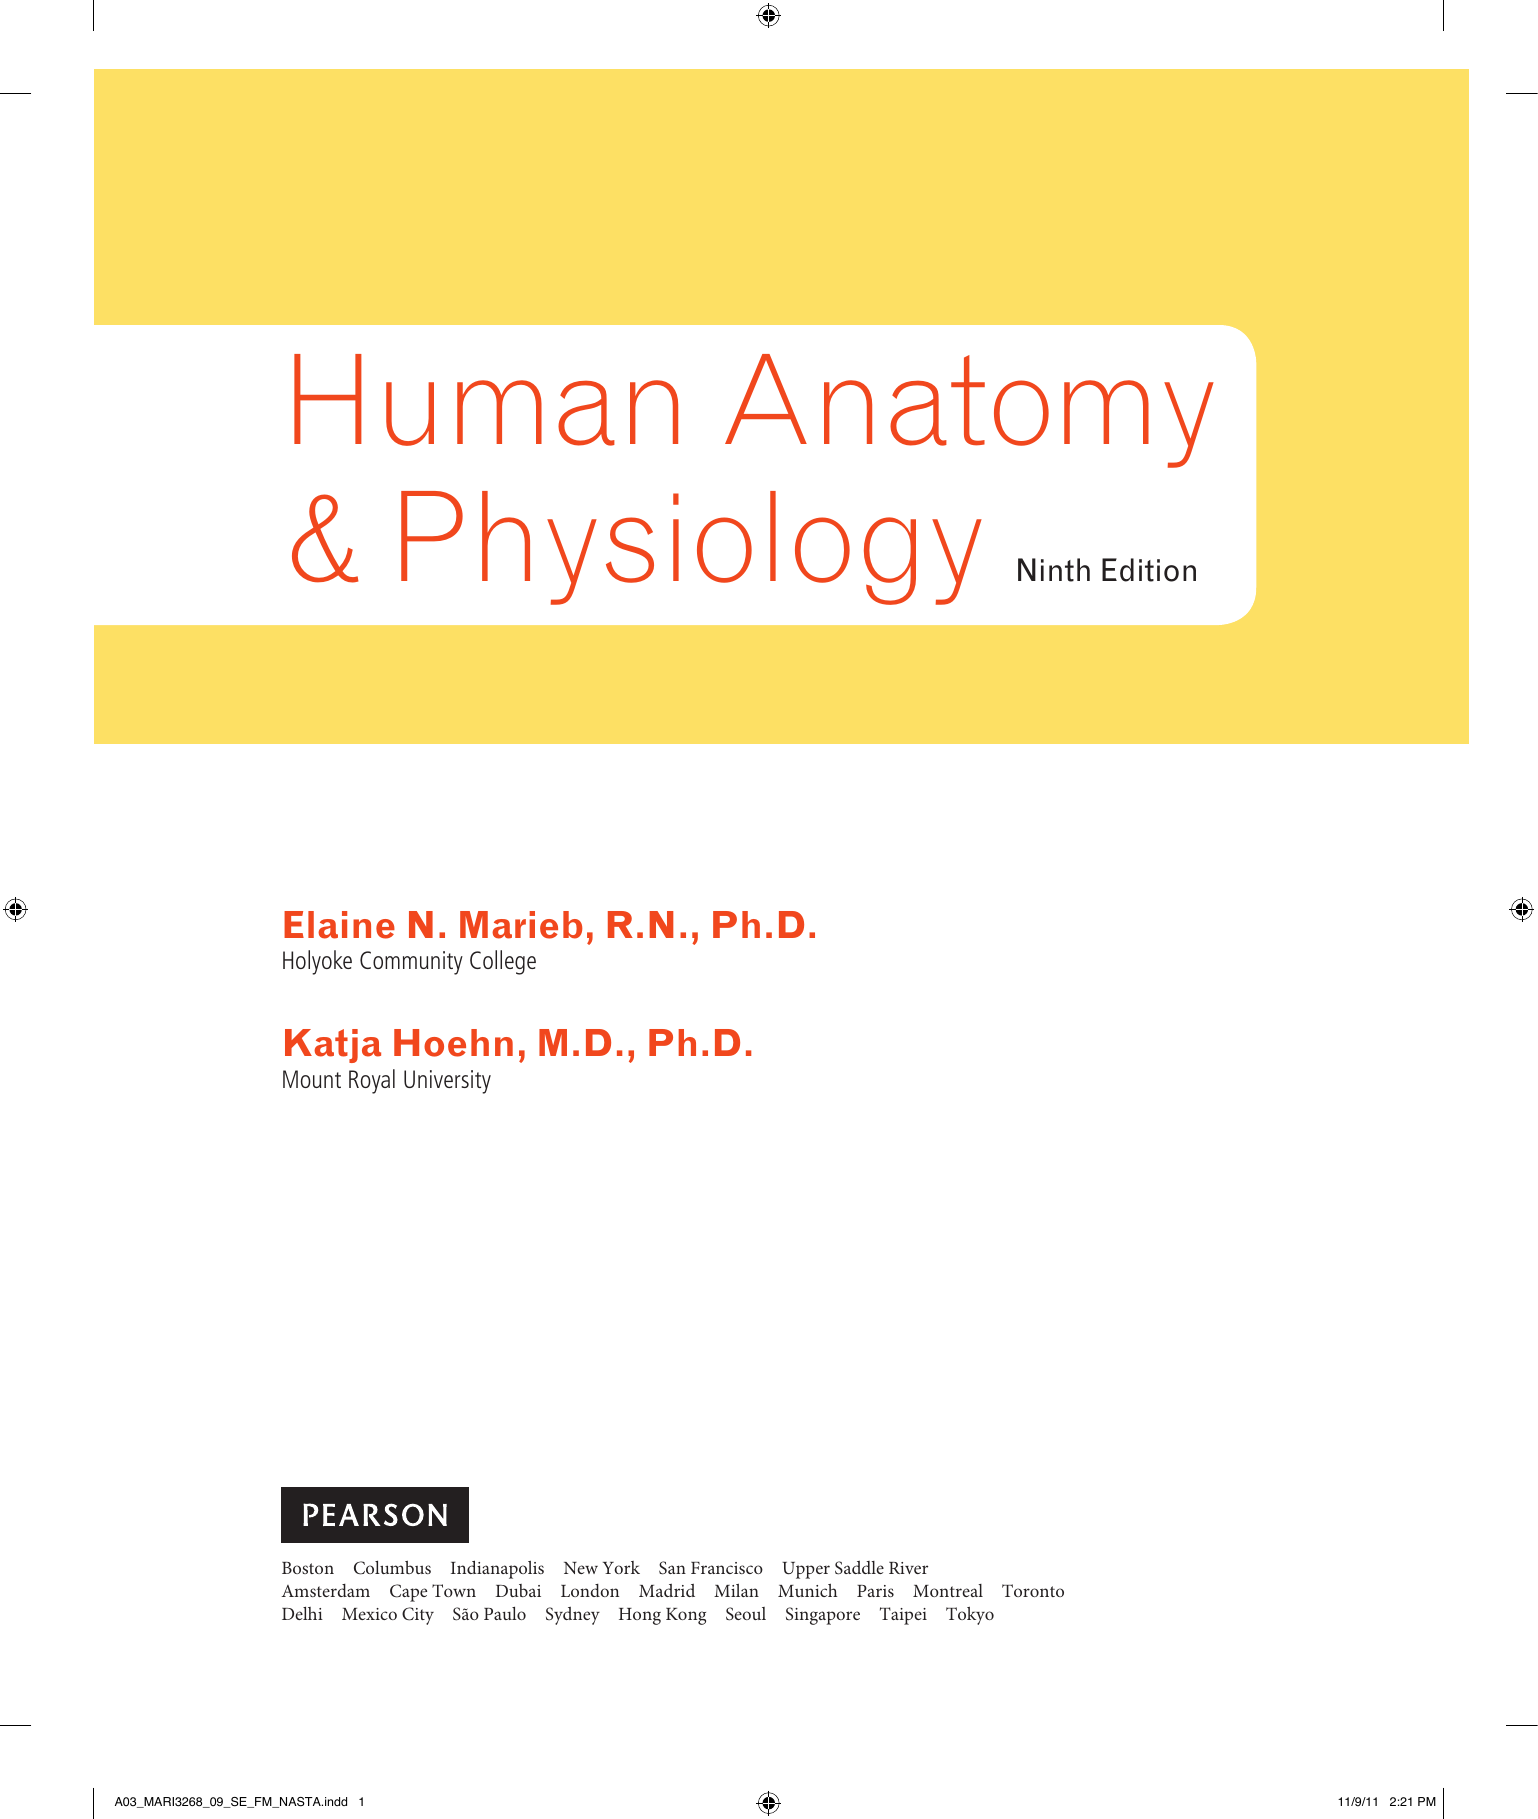 Human Anatomy & Physiology Ninth Edition